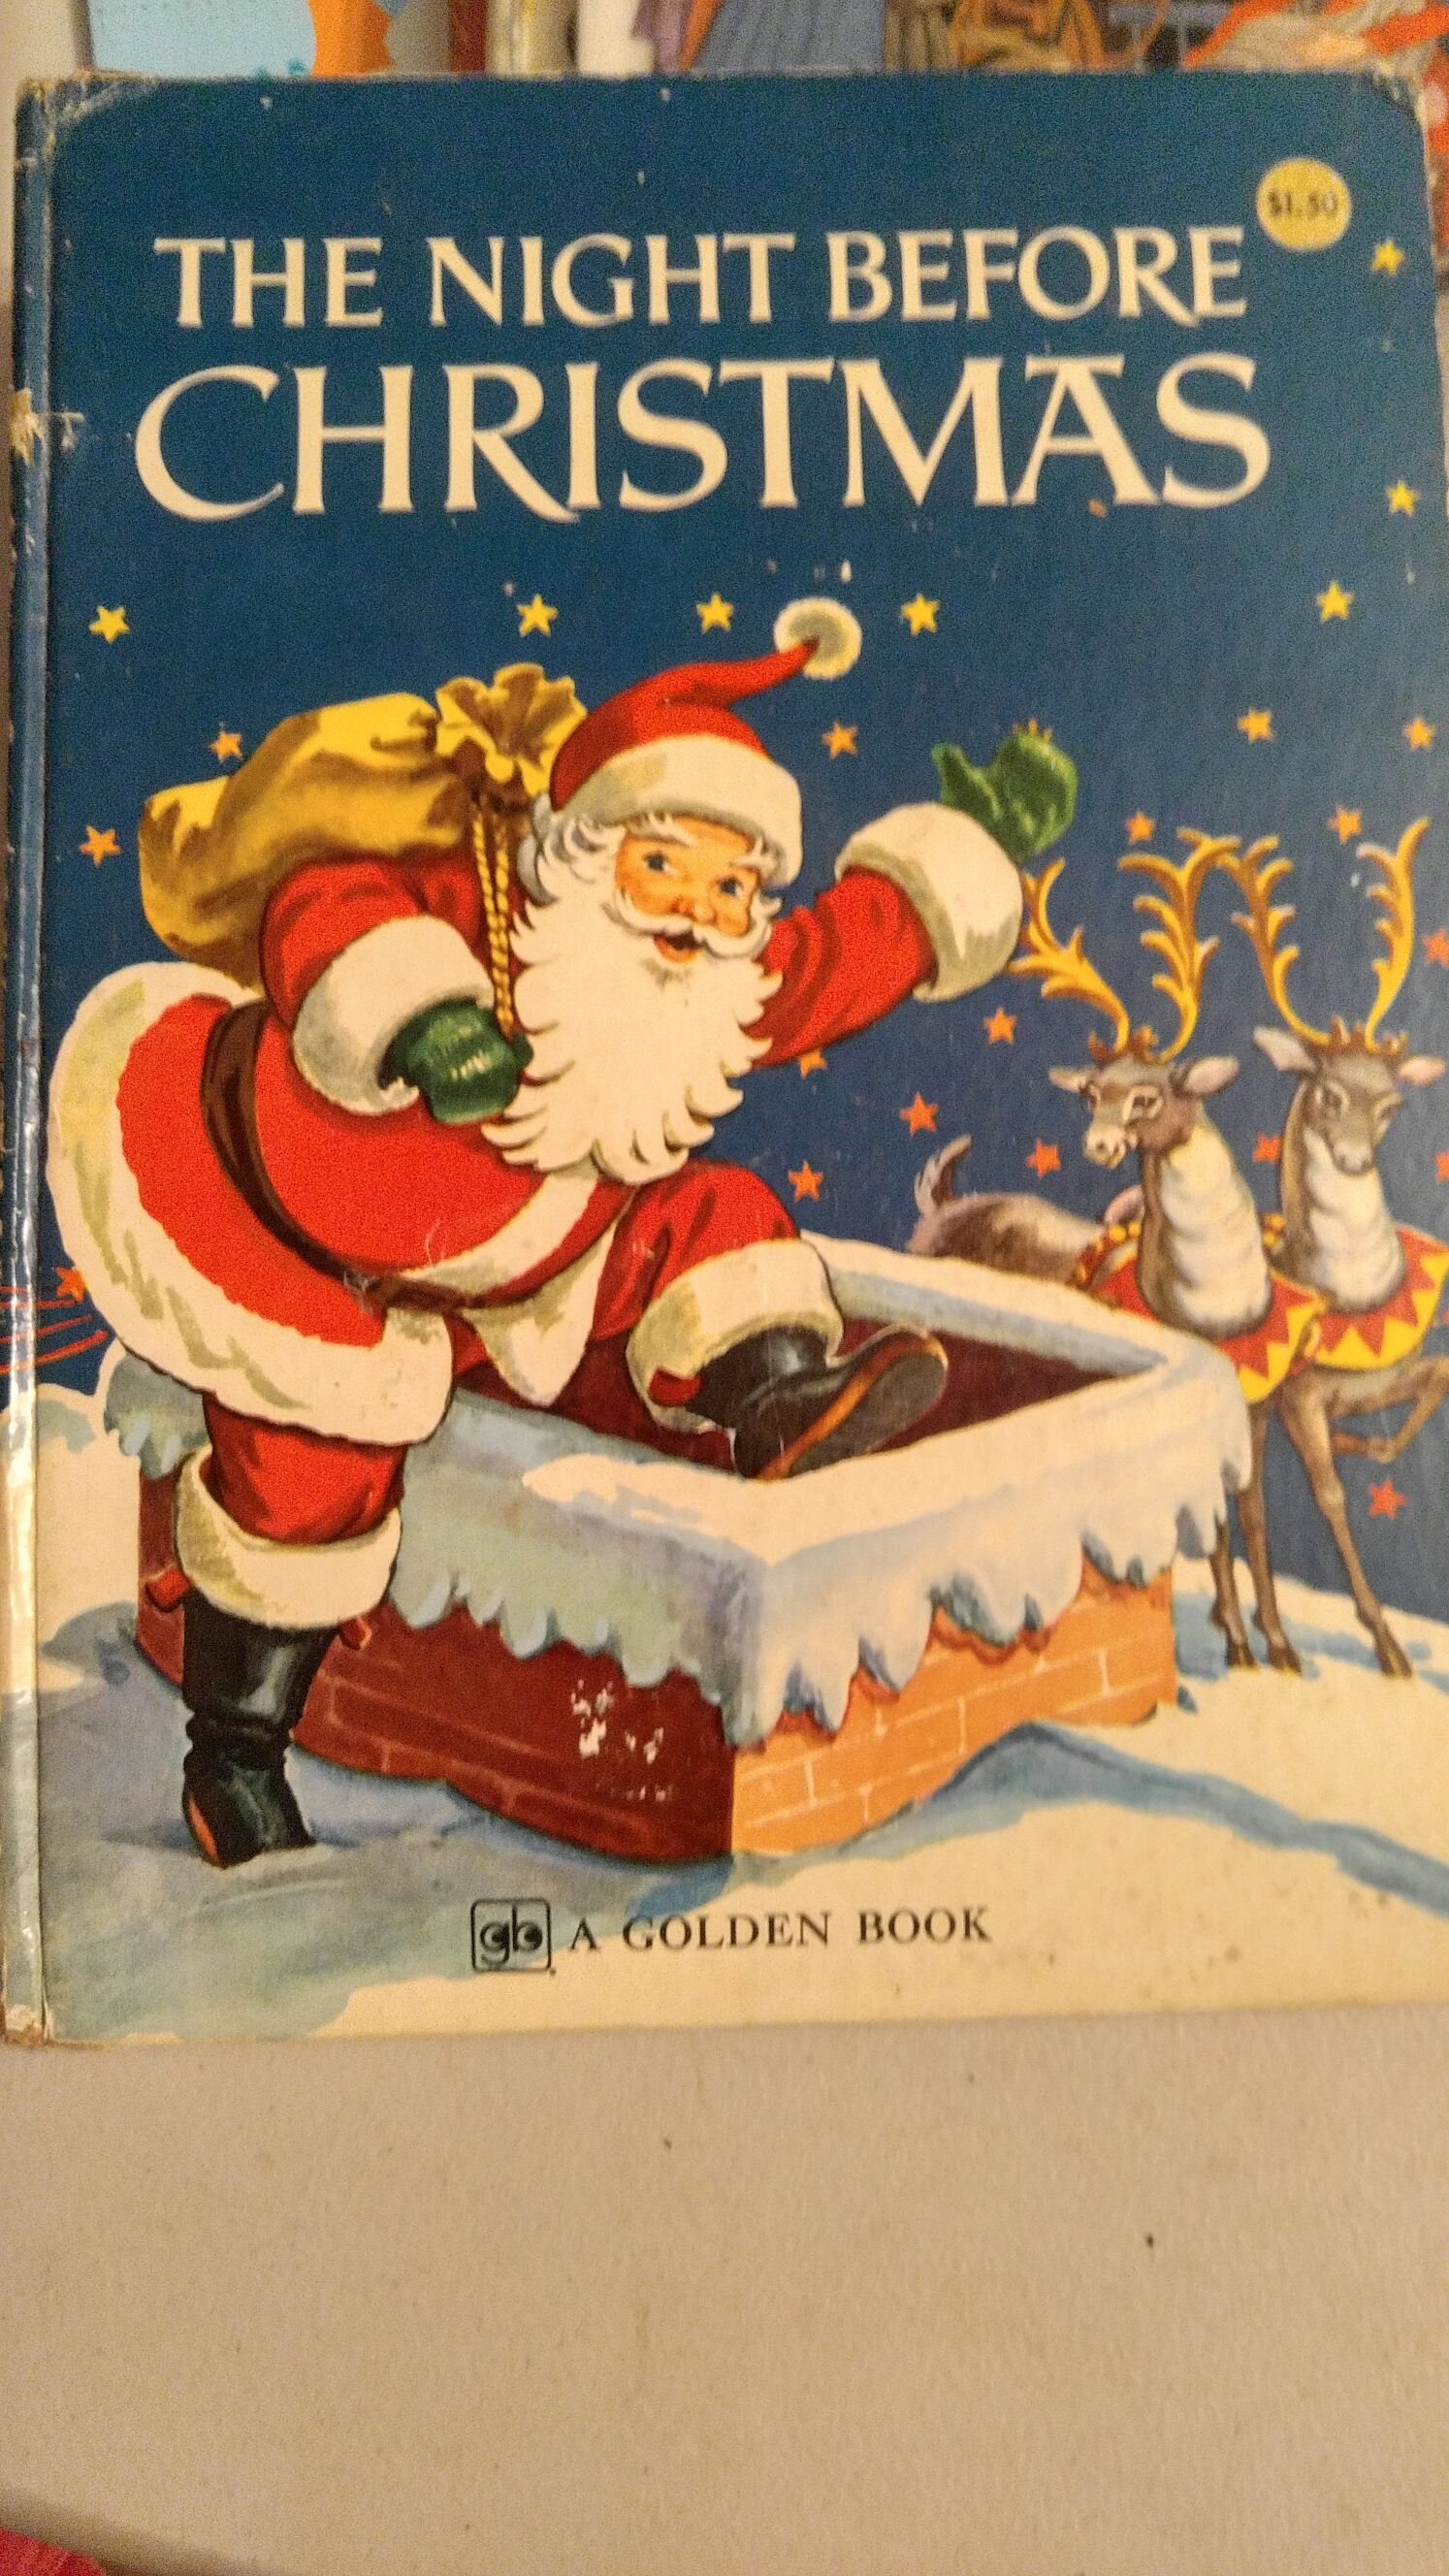 The Night Before Christmas - Hardcover cover